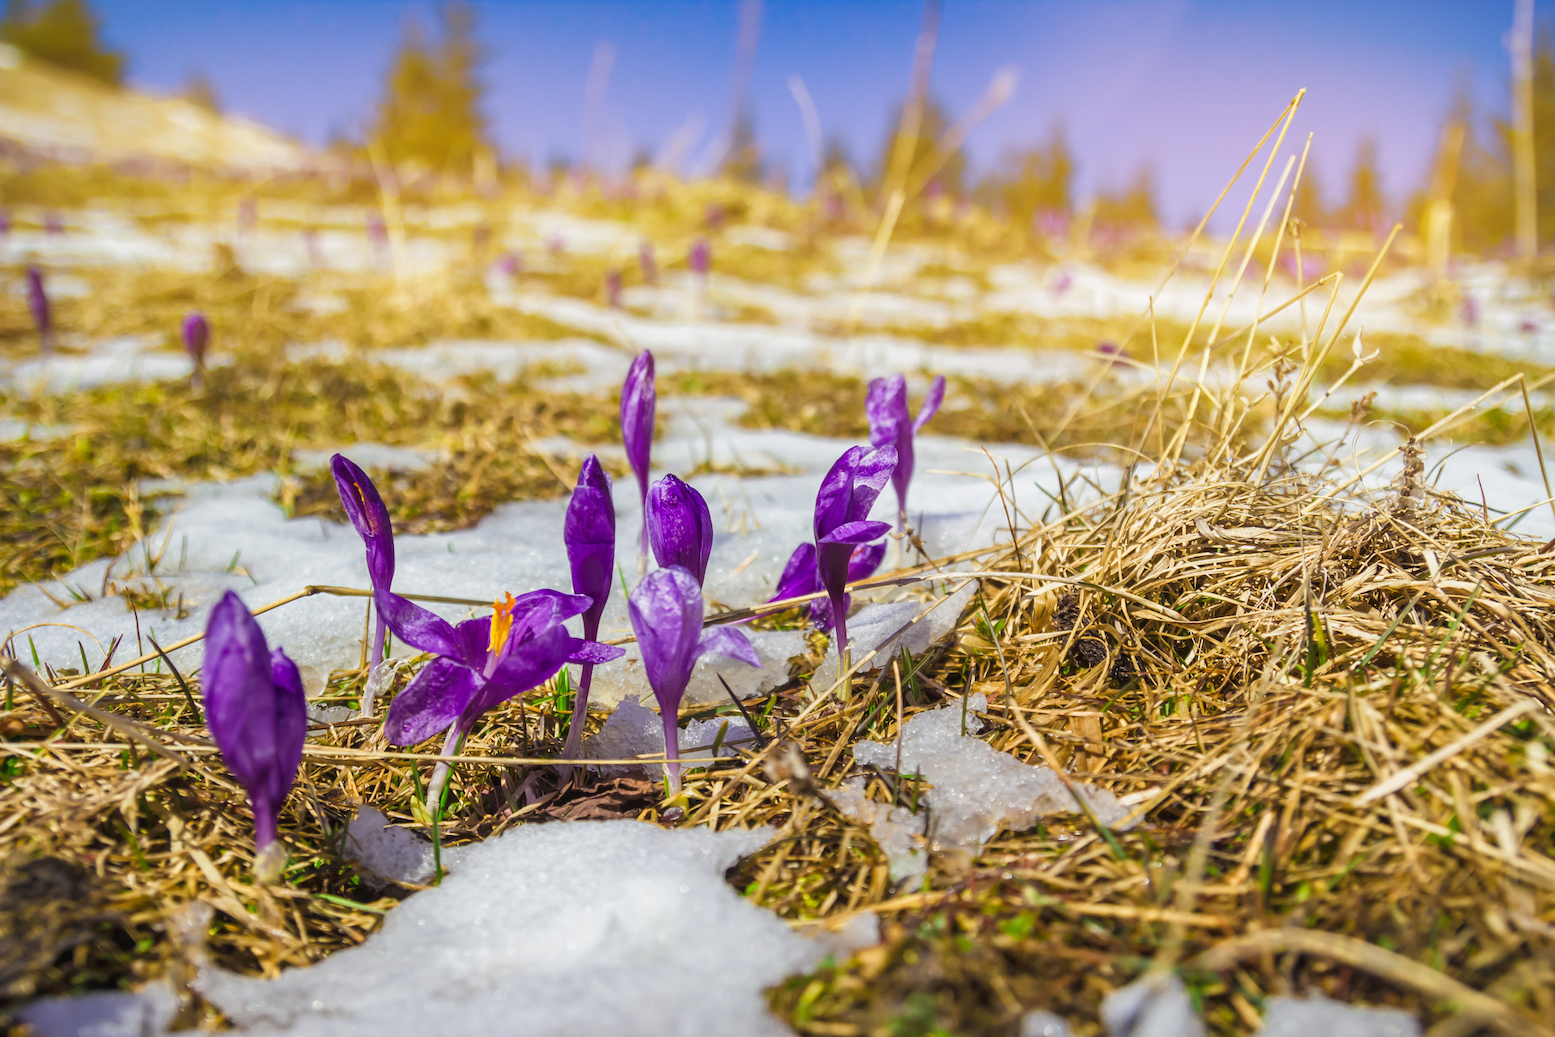 A new study has found that early spring and melting snow in forests might actually help in mitigating climate change.